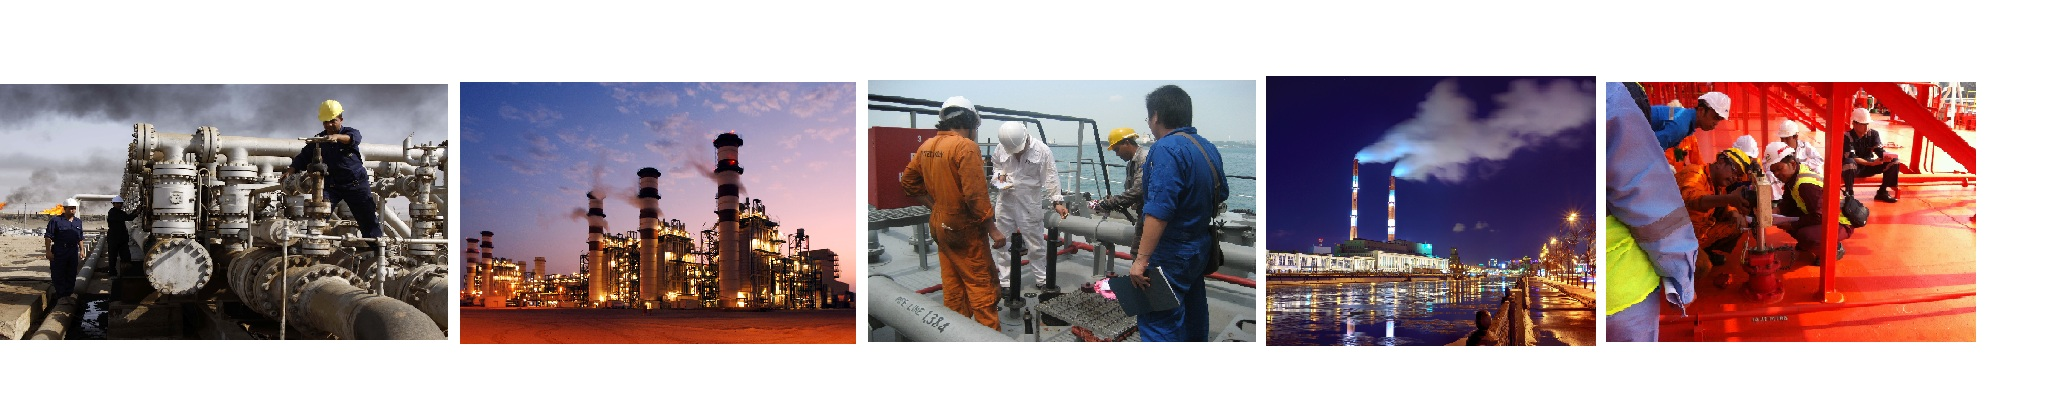 Inspection of Petrochemical products